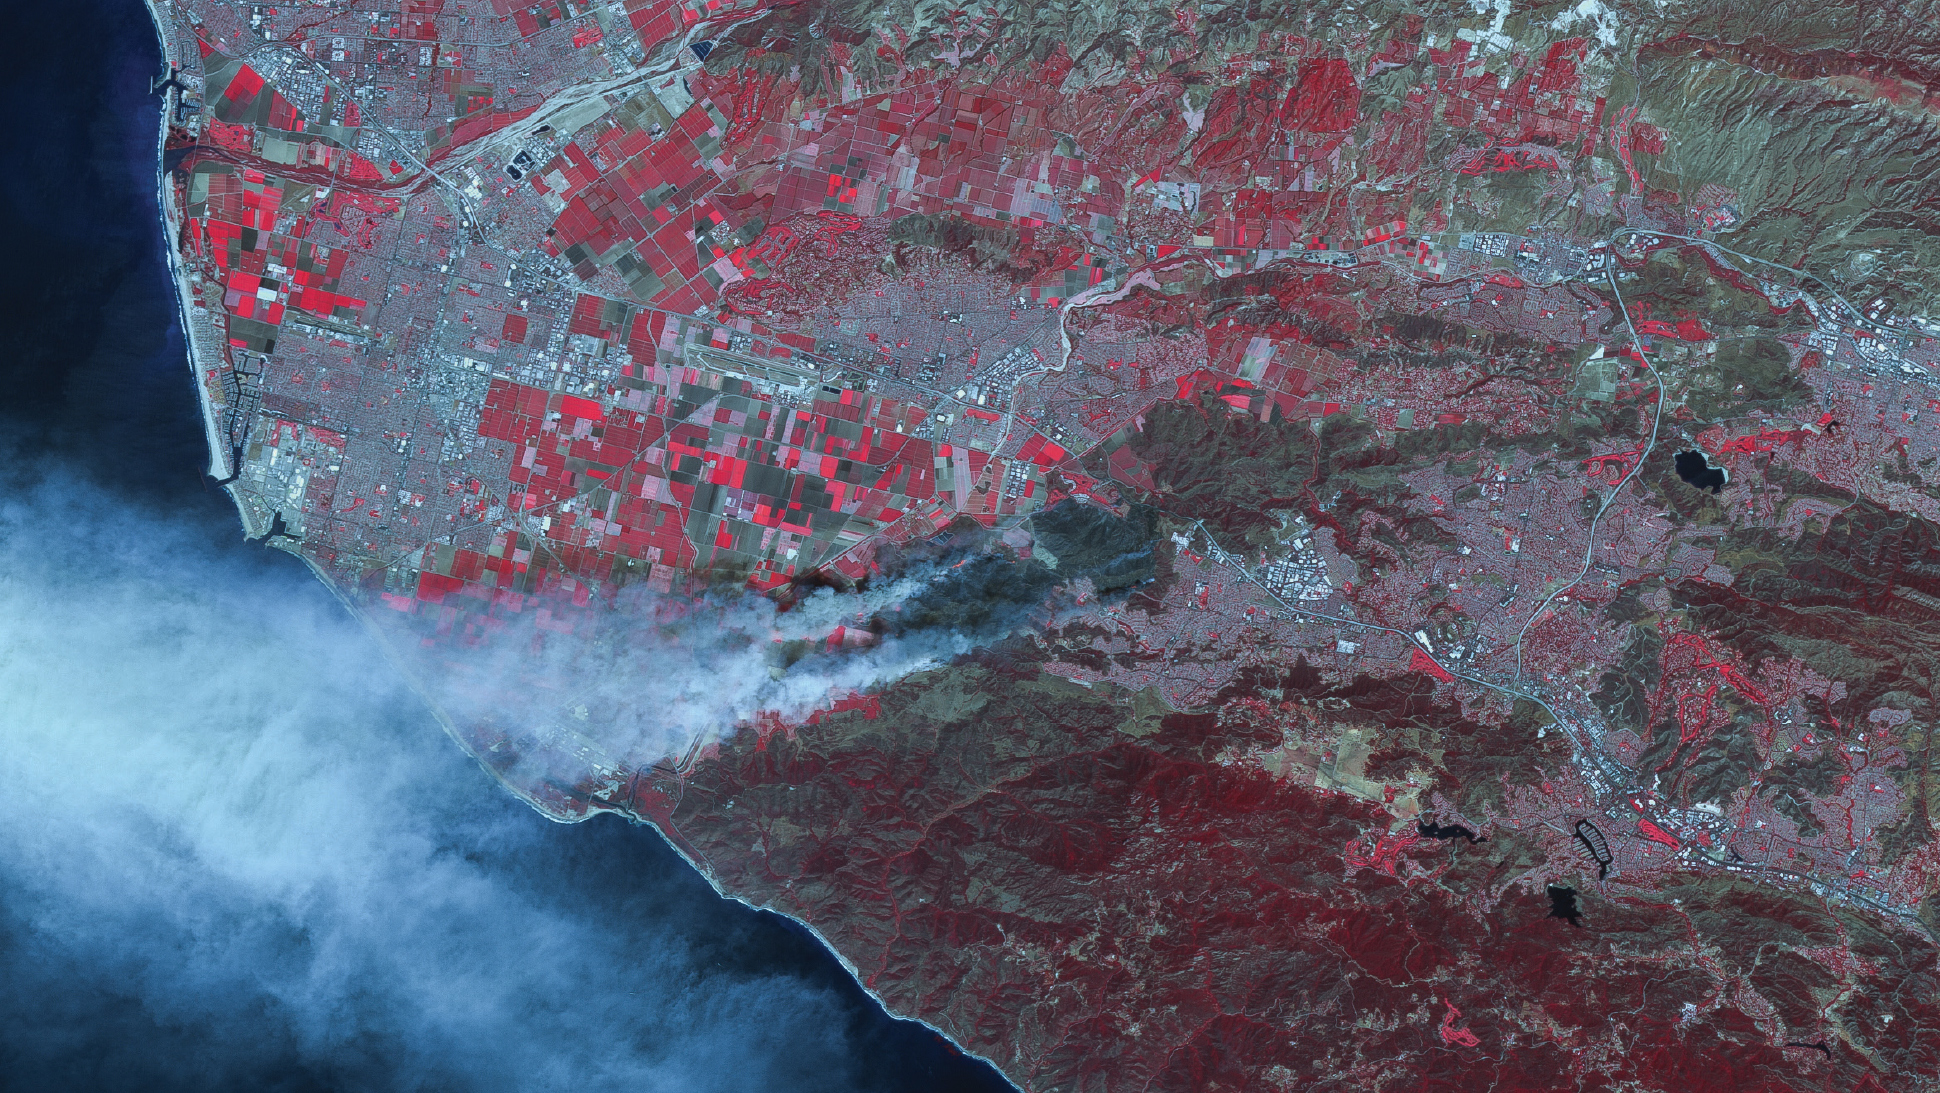 FIGURE 4-5. California Wildfires, USA, imaged May 2, 2013.